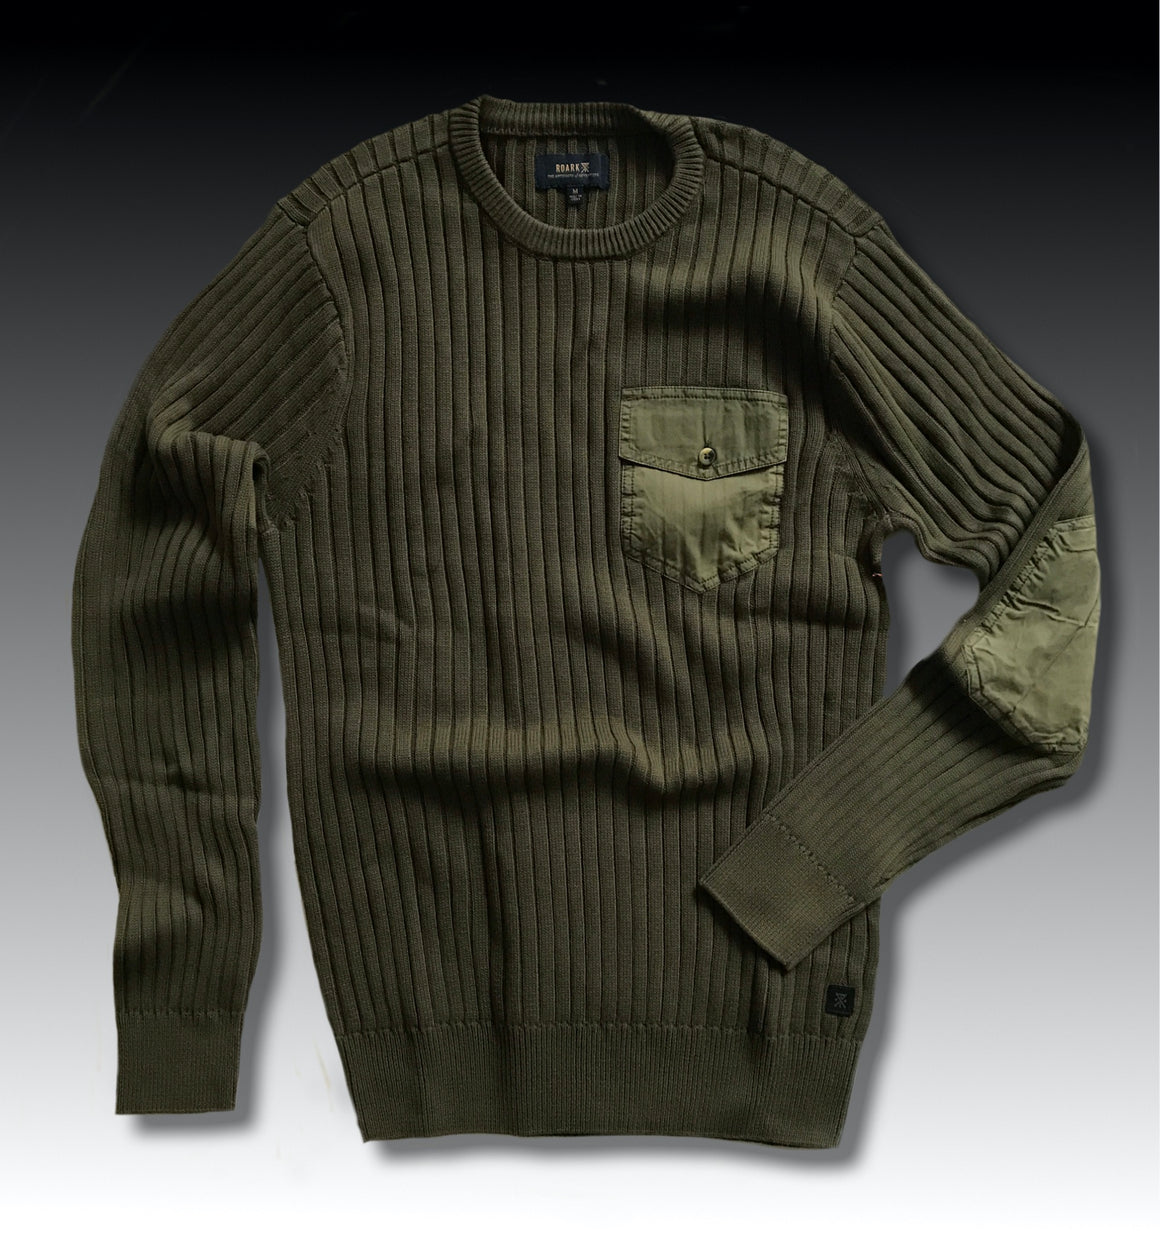 SCOUT SWEATER MLITARY